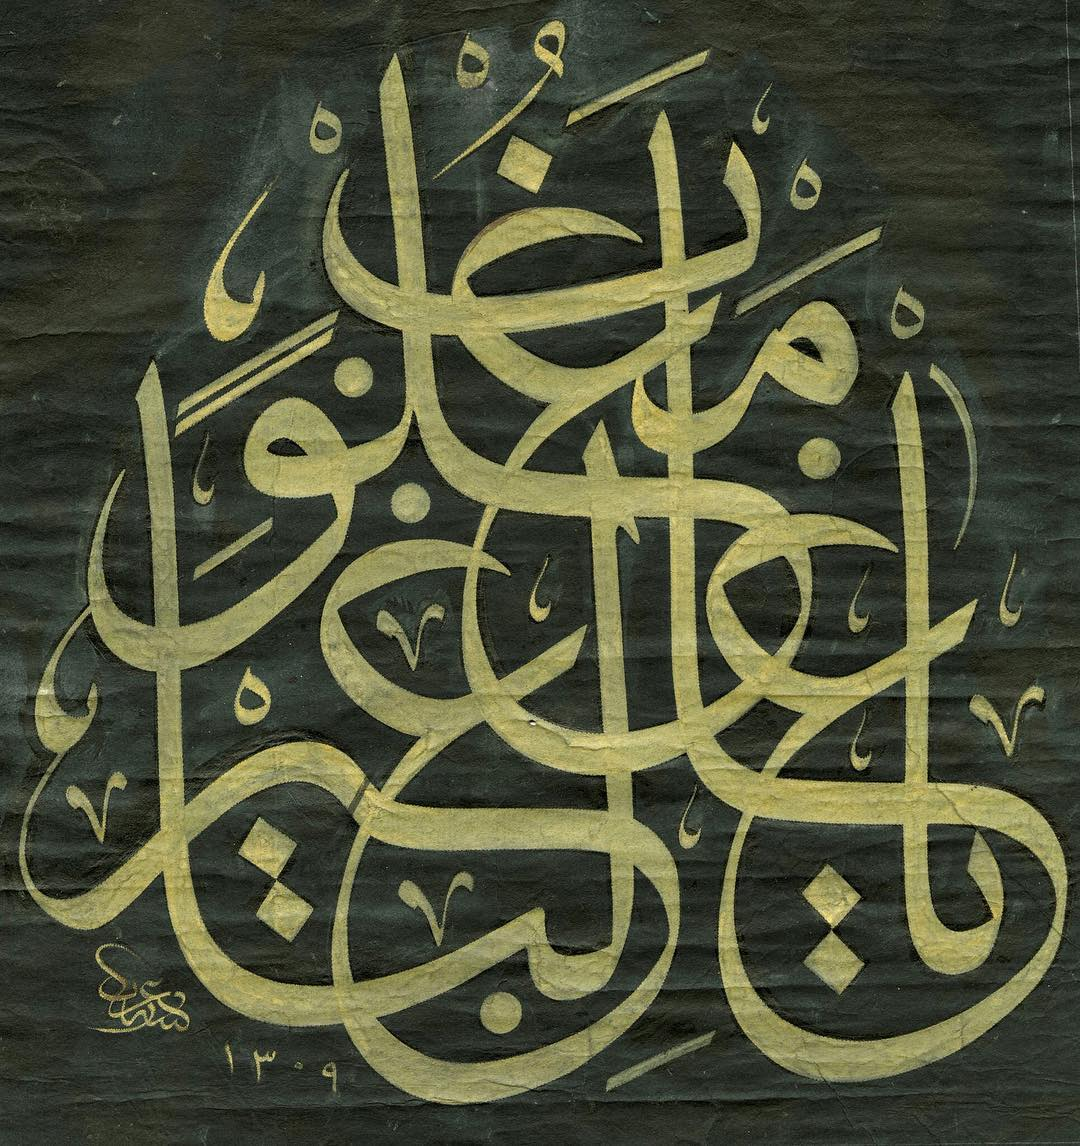 Apk Website For Arabic Calligraphy – يَا غَالِبًا غَيْرَ مَغْلُوبٍ Yâ Ğaliben Ğayra Mağlûb ‎Mağlup olmayan, dâima G… 731